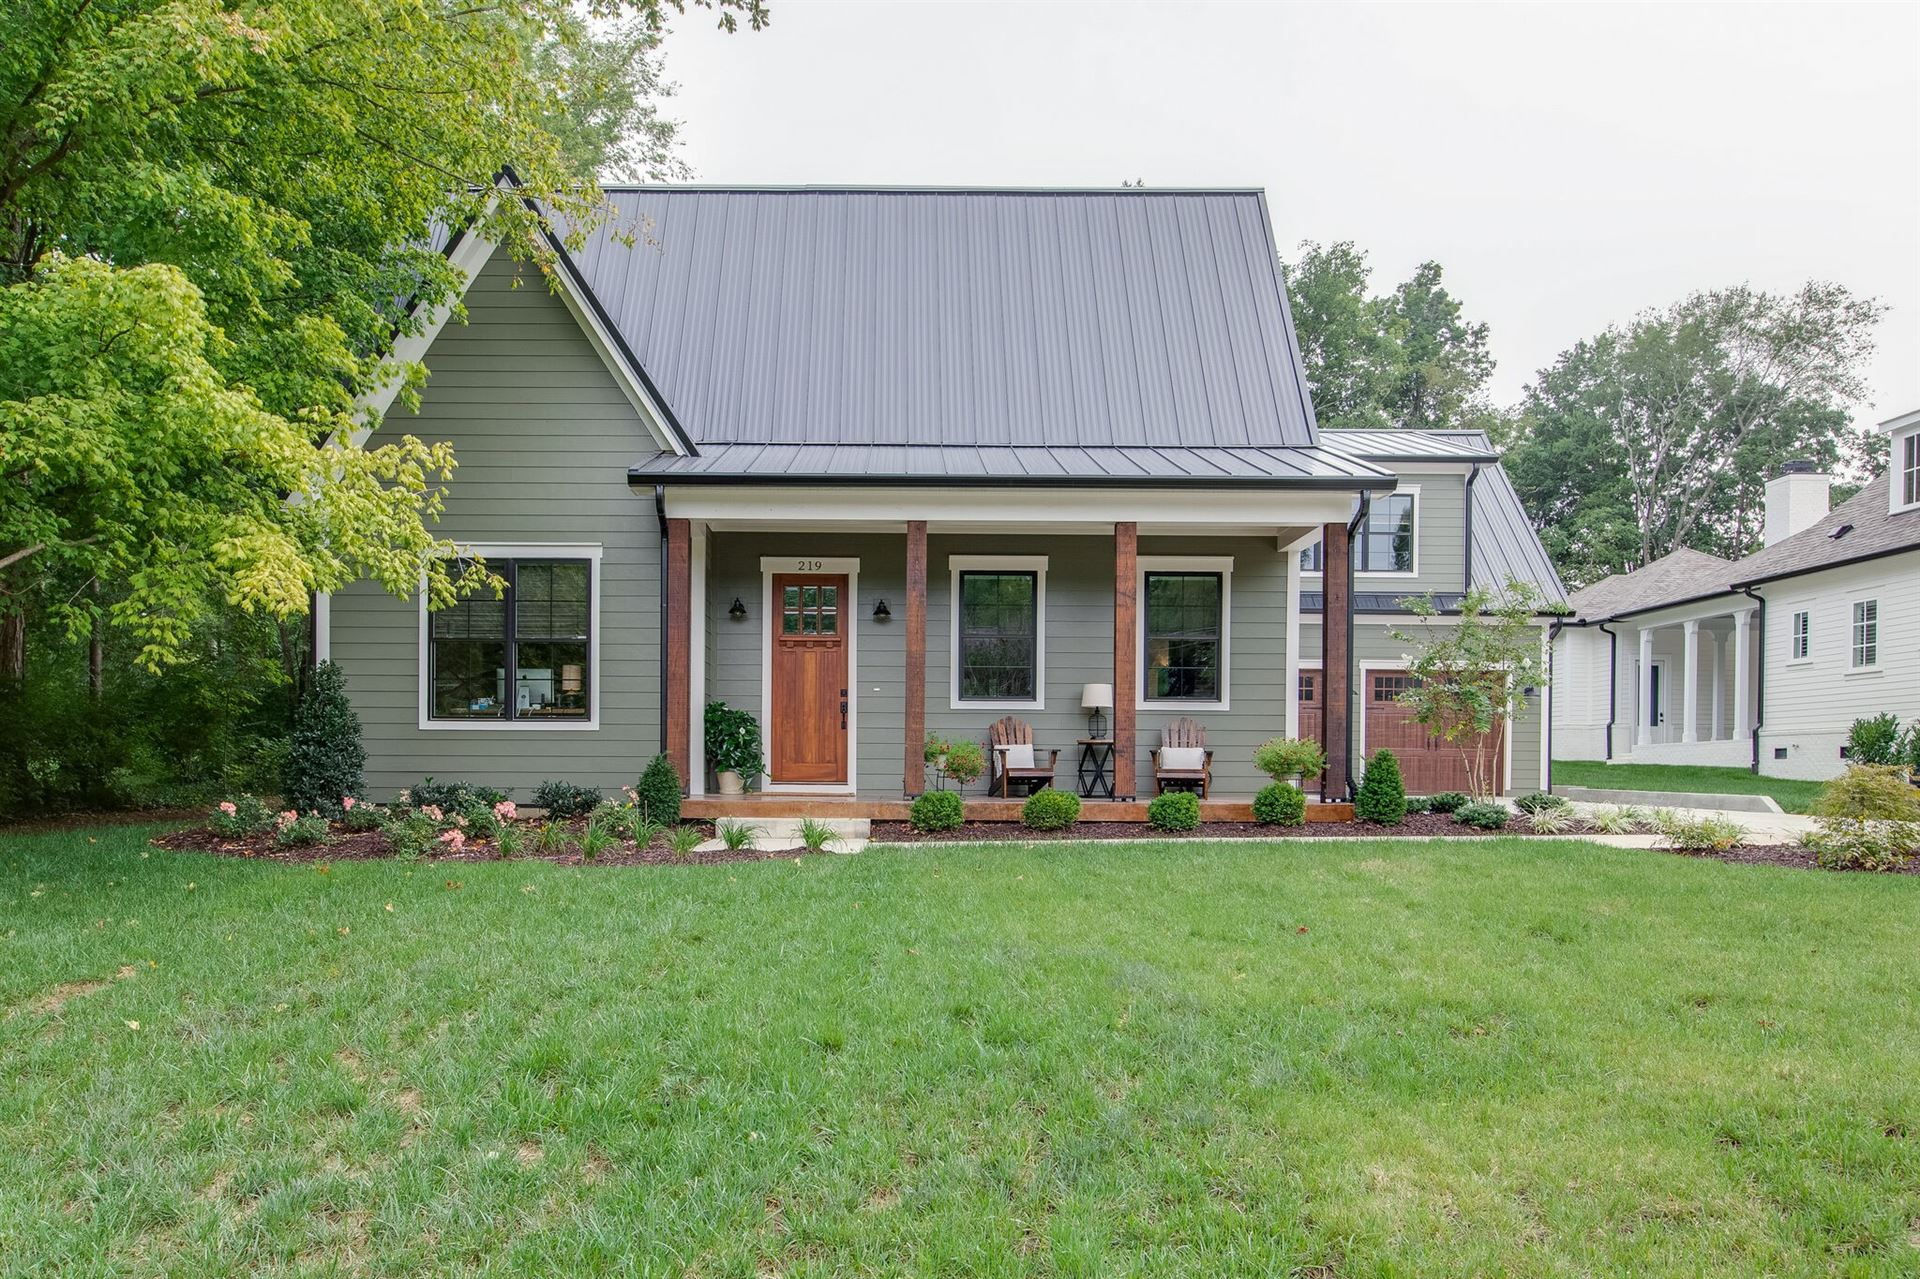 Photo of 219 Everbright St, Franklin, TN 37064 (MLS # 2218844)